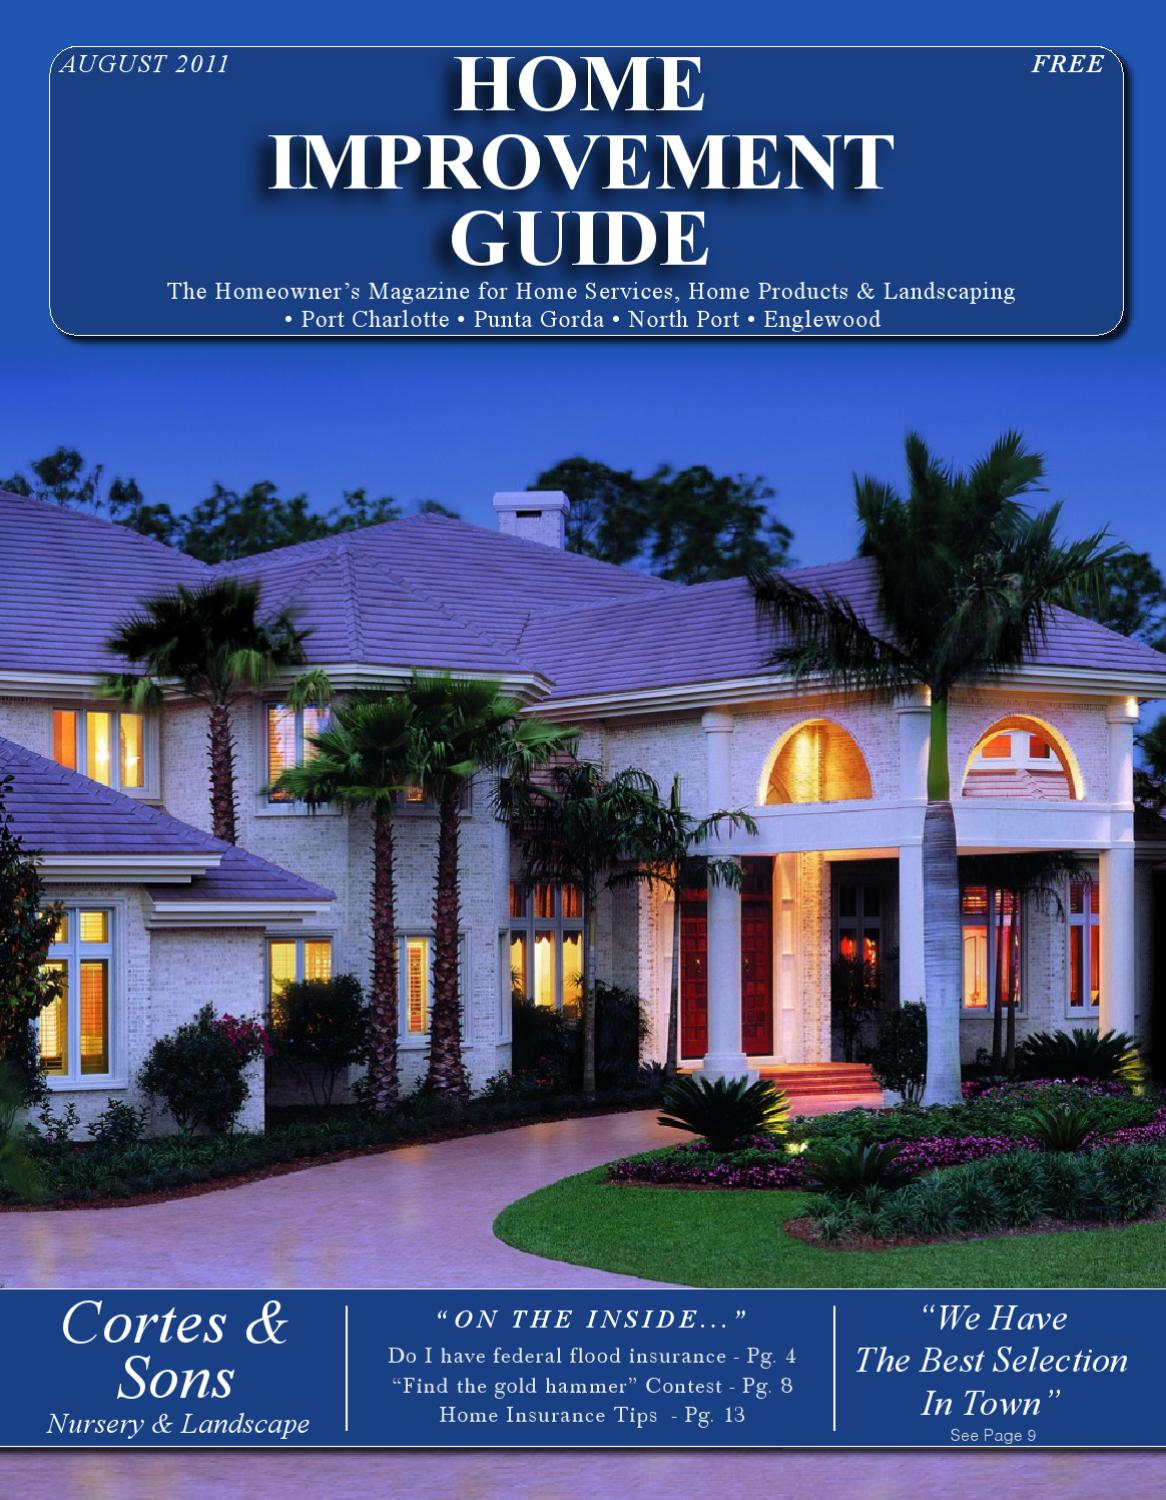 Home Improvement Guide August 2011 By Home Improvement